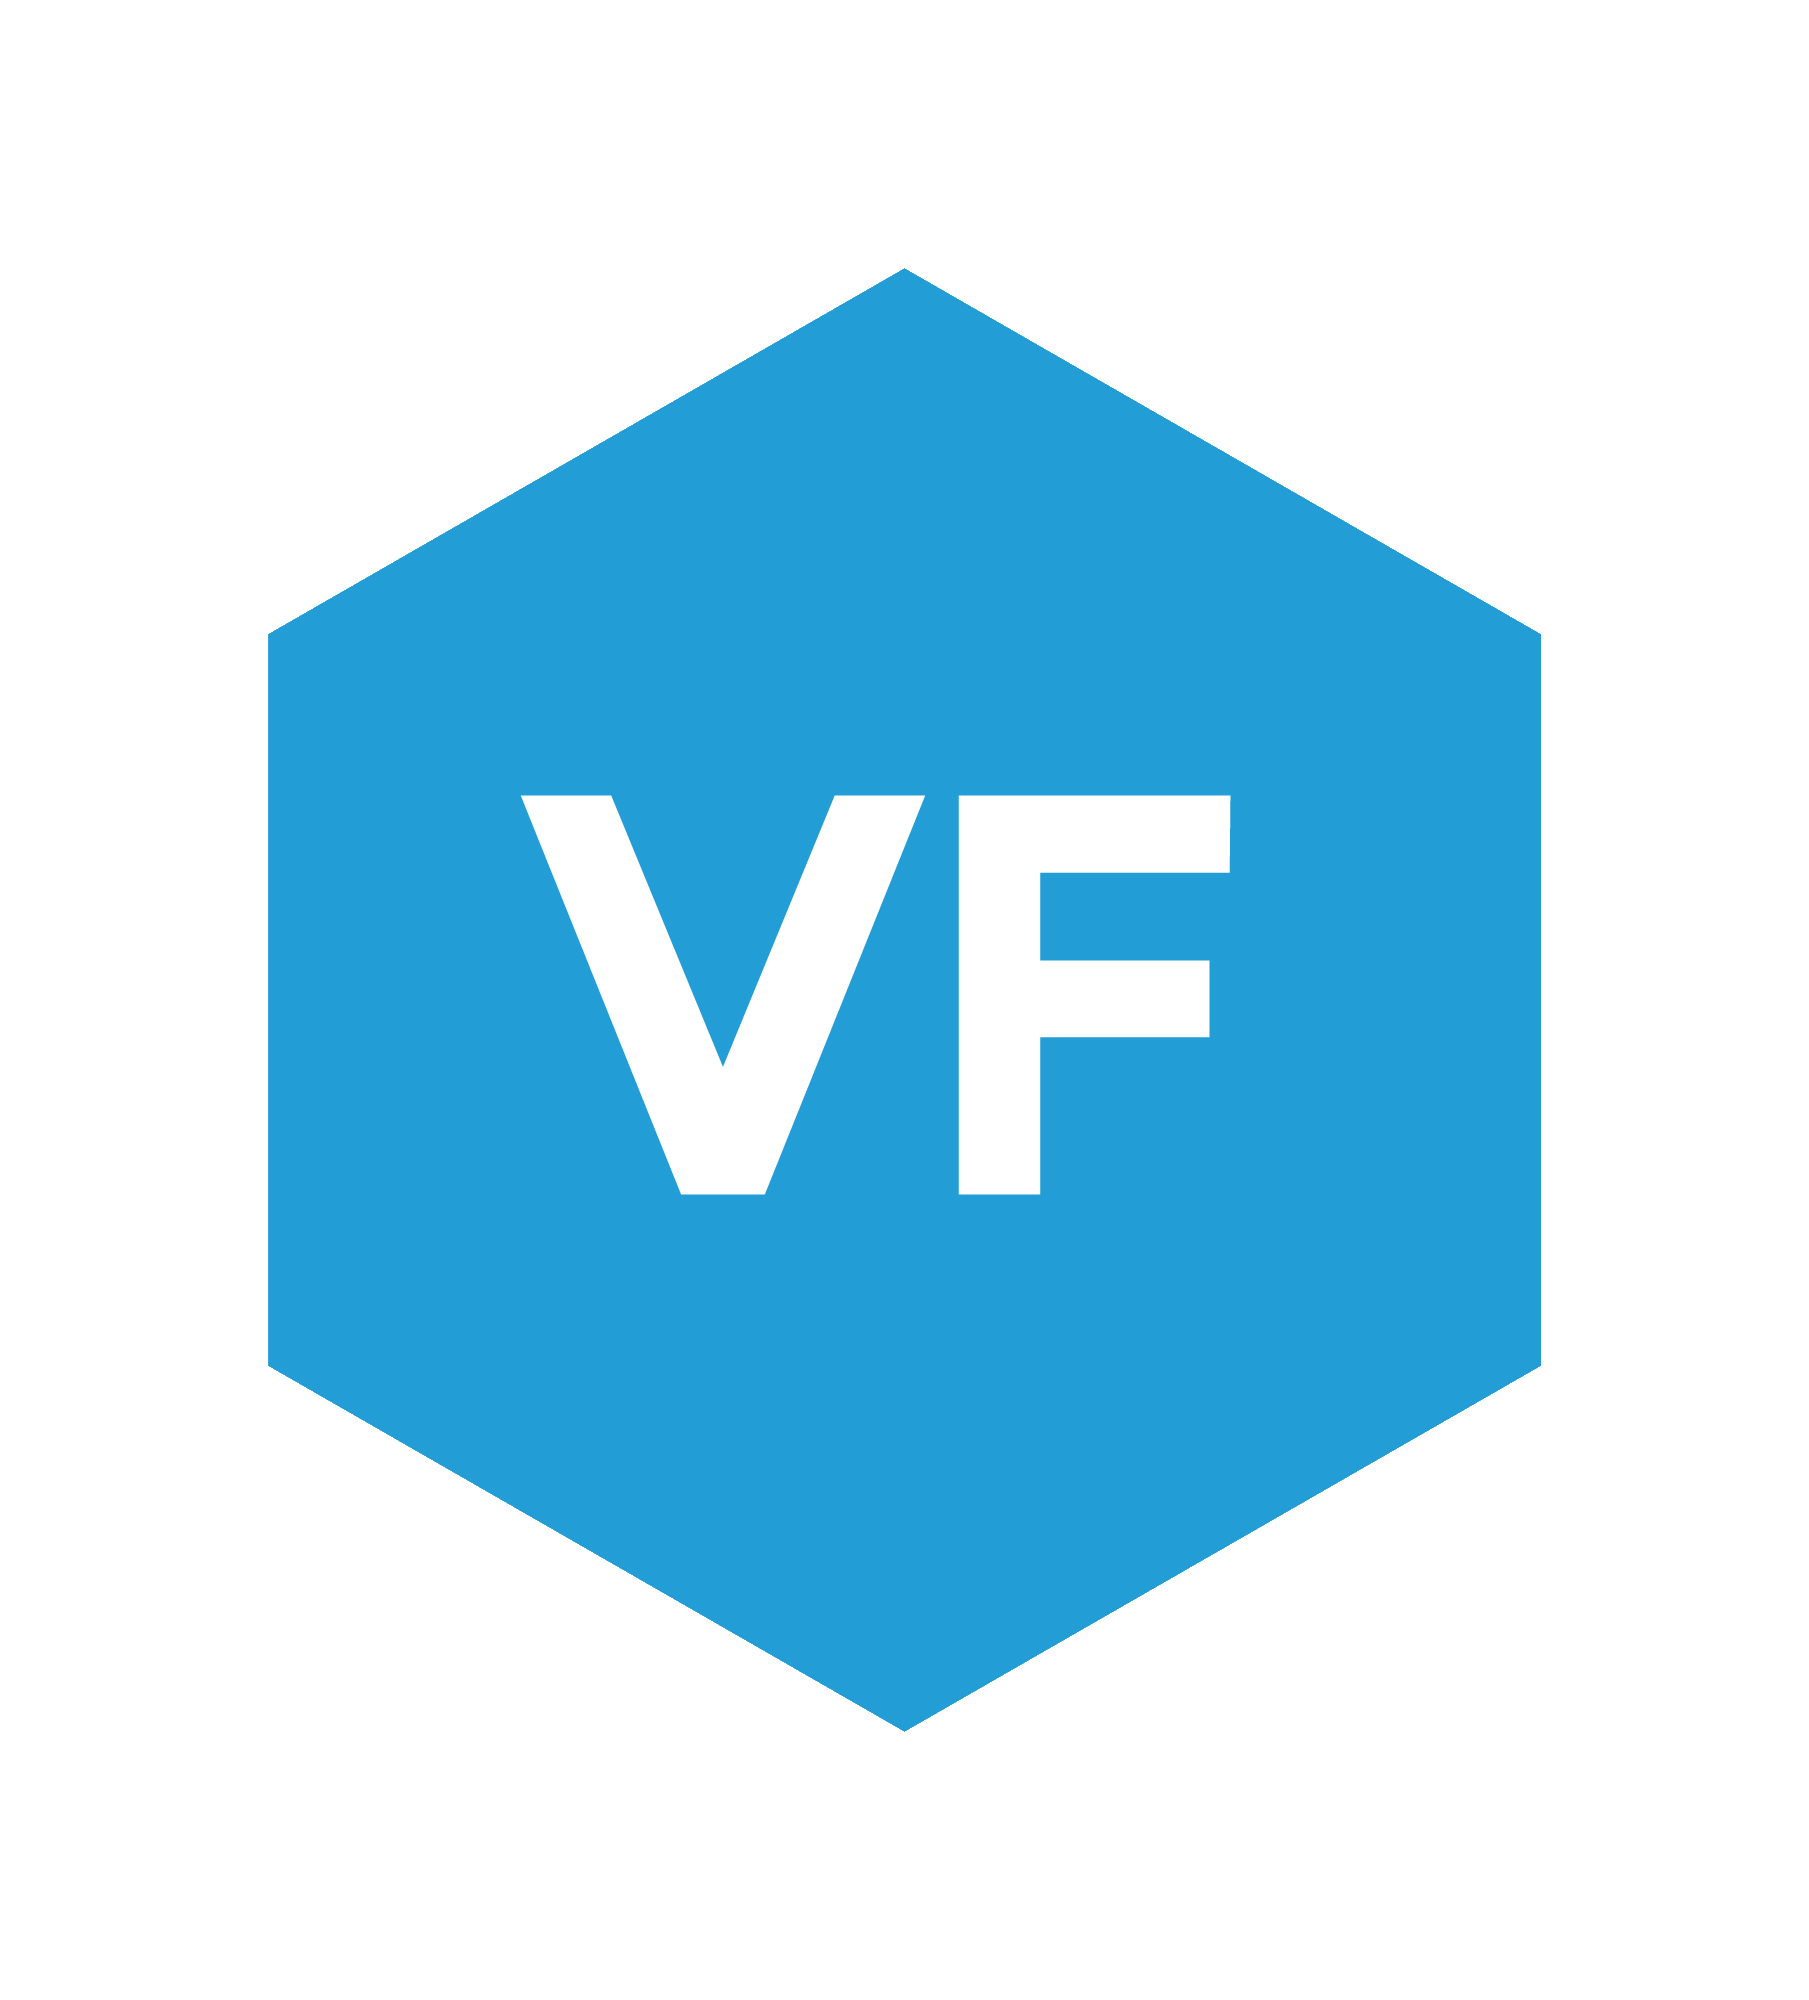 VentureFocus helps start-ups get funding by putting them in touch with the investors that are right for them. We have a database of over 6000 investors from all over the world, in every sector. We even work individually with each start-up to insure they're getting the most of our service!